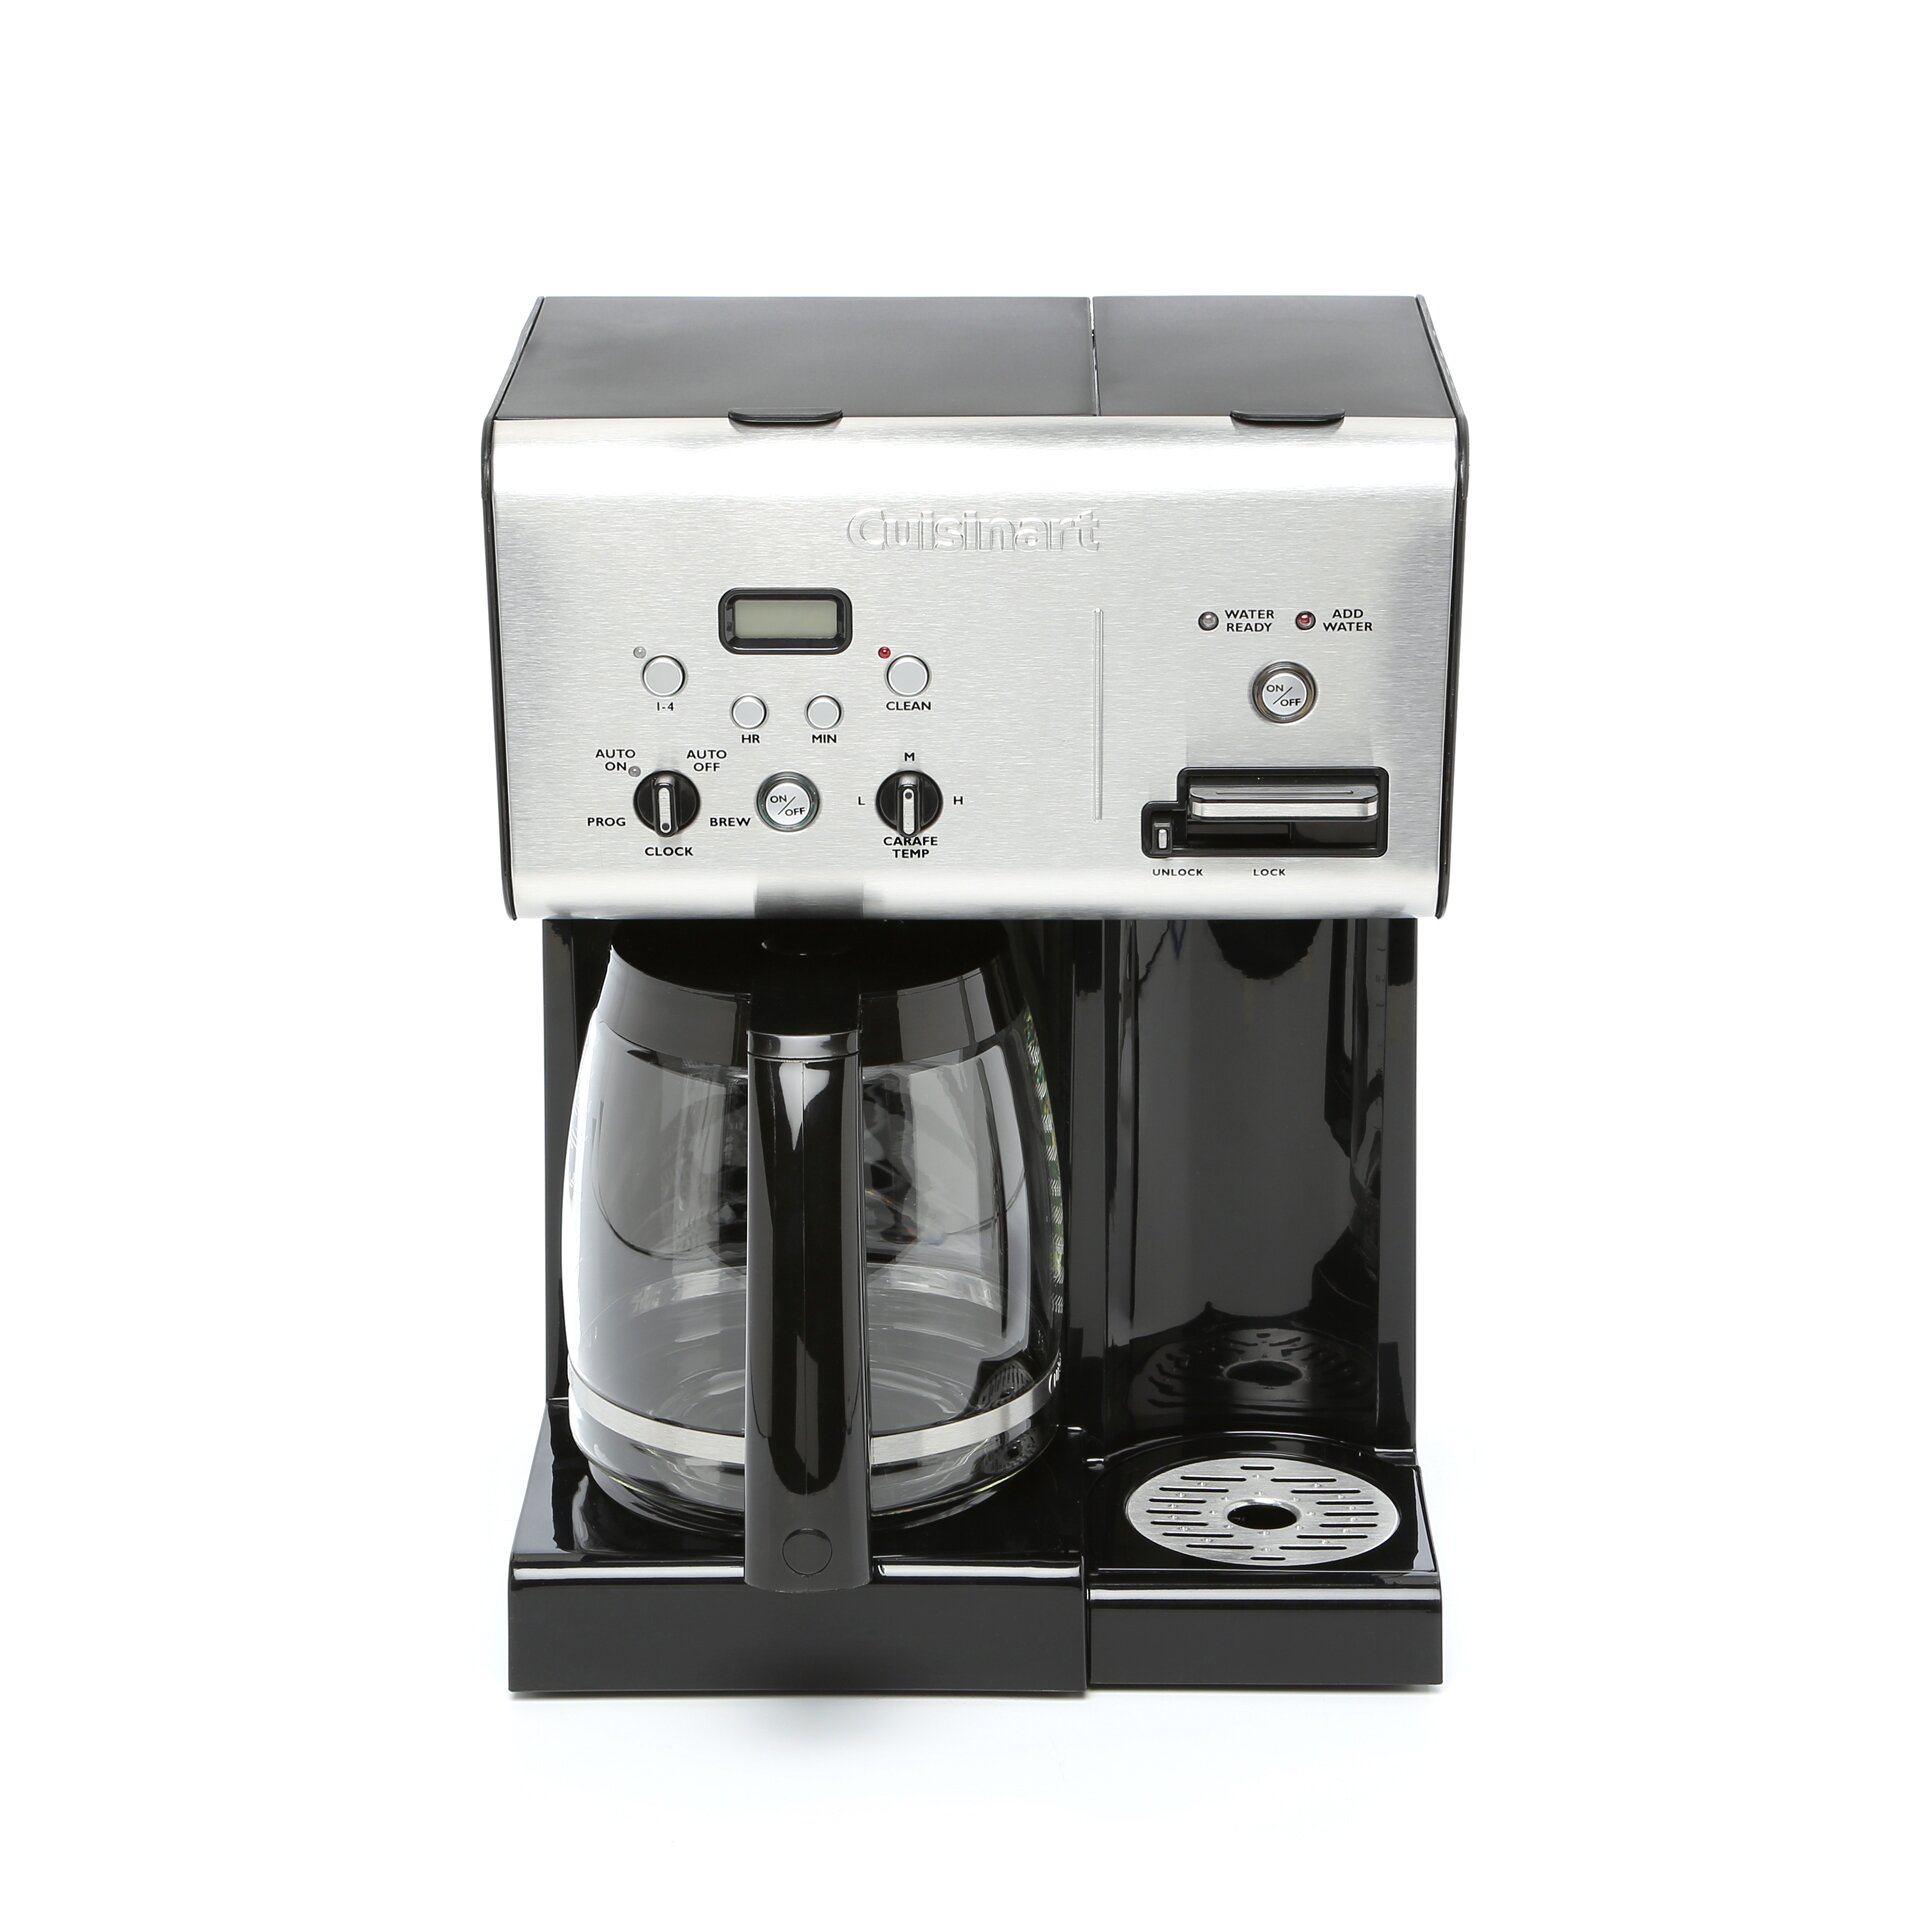 Cuisinart Coffee Maker Fire : Cuisinart Programmable 12 Cup Coffee Maker with Hot Water System & Reviews Wayfair